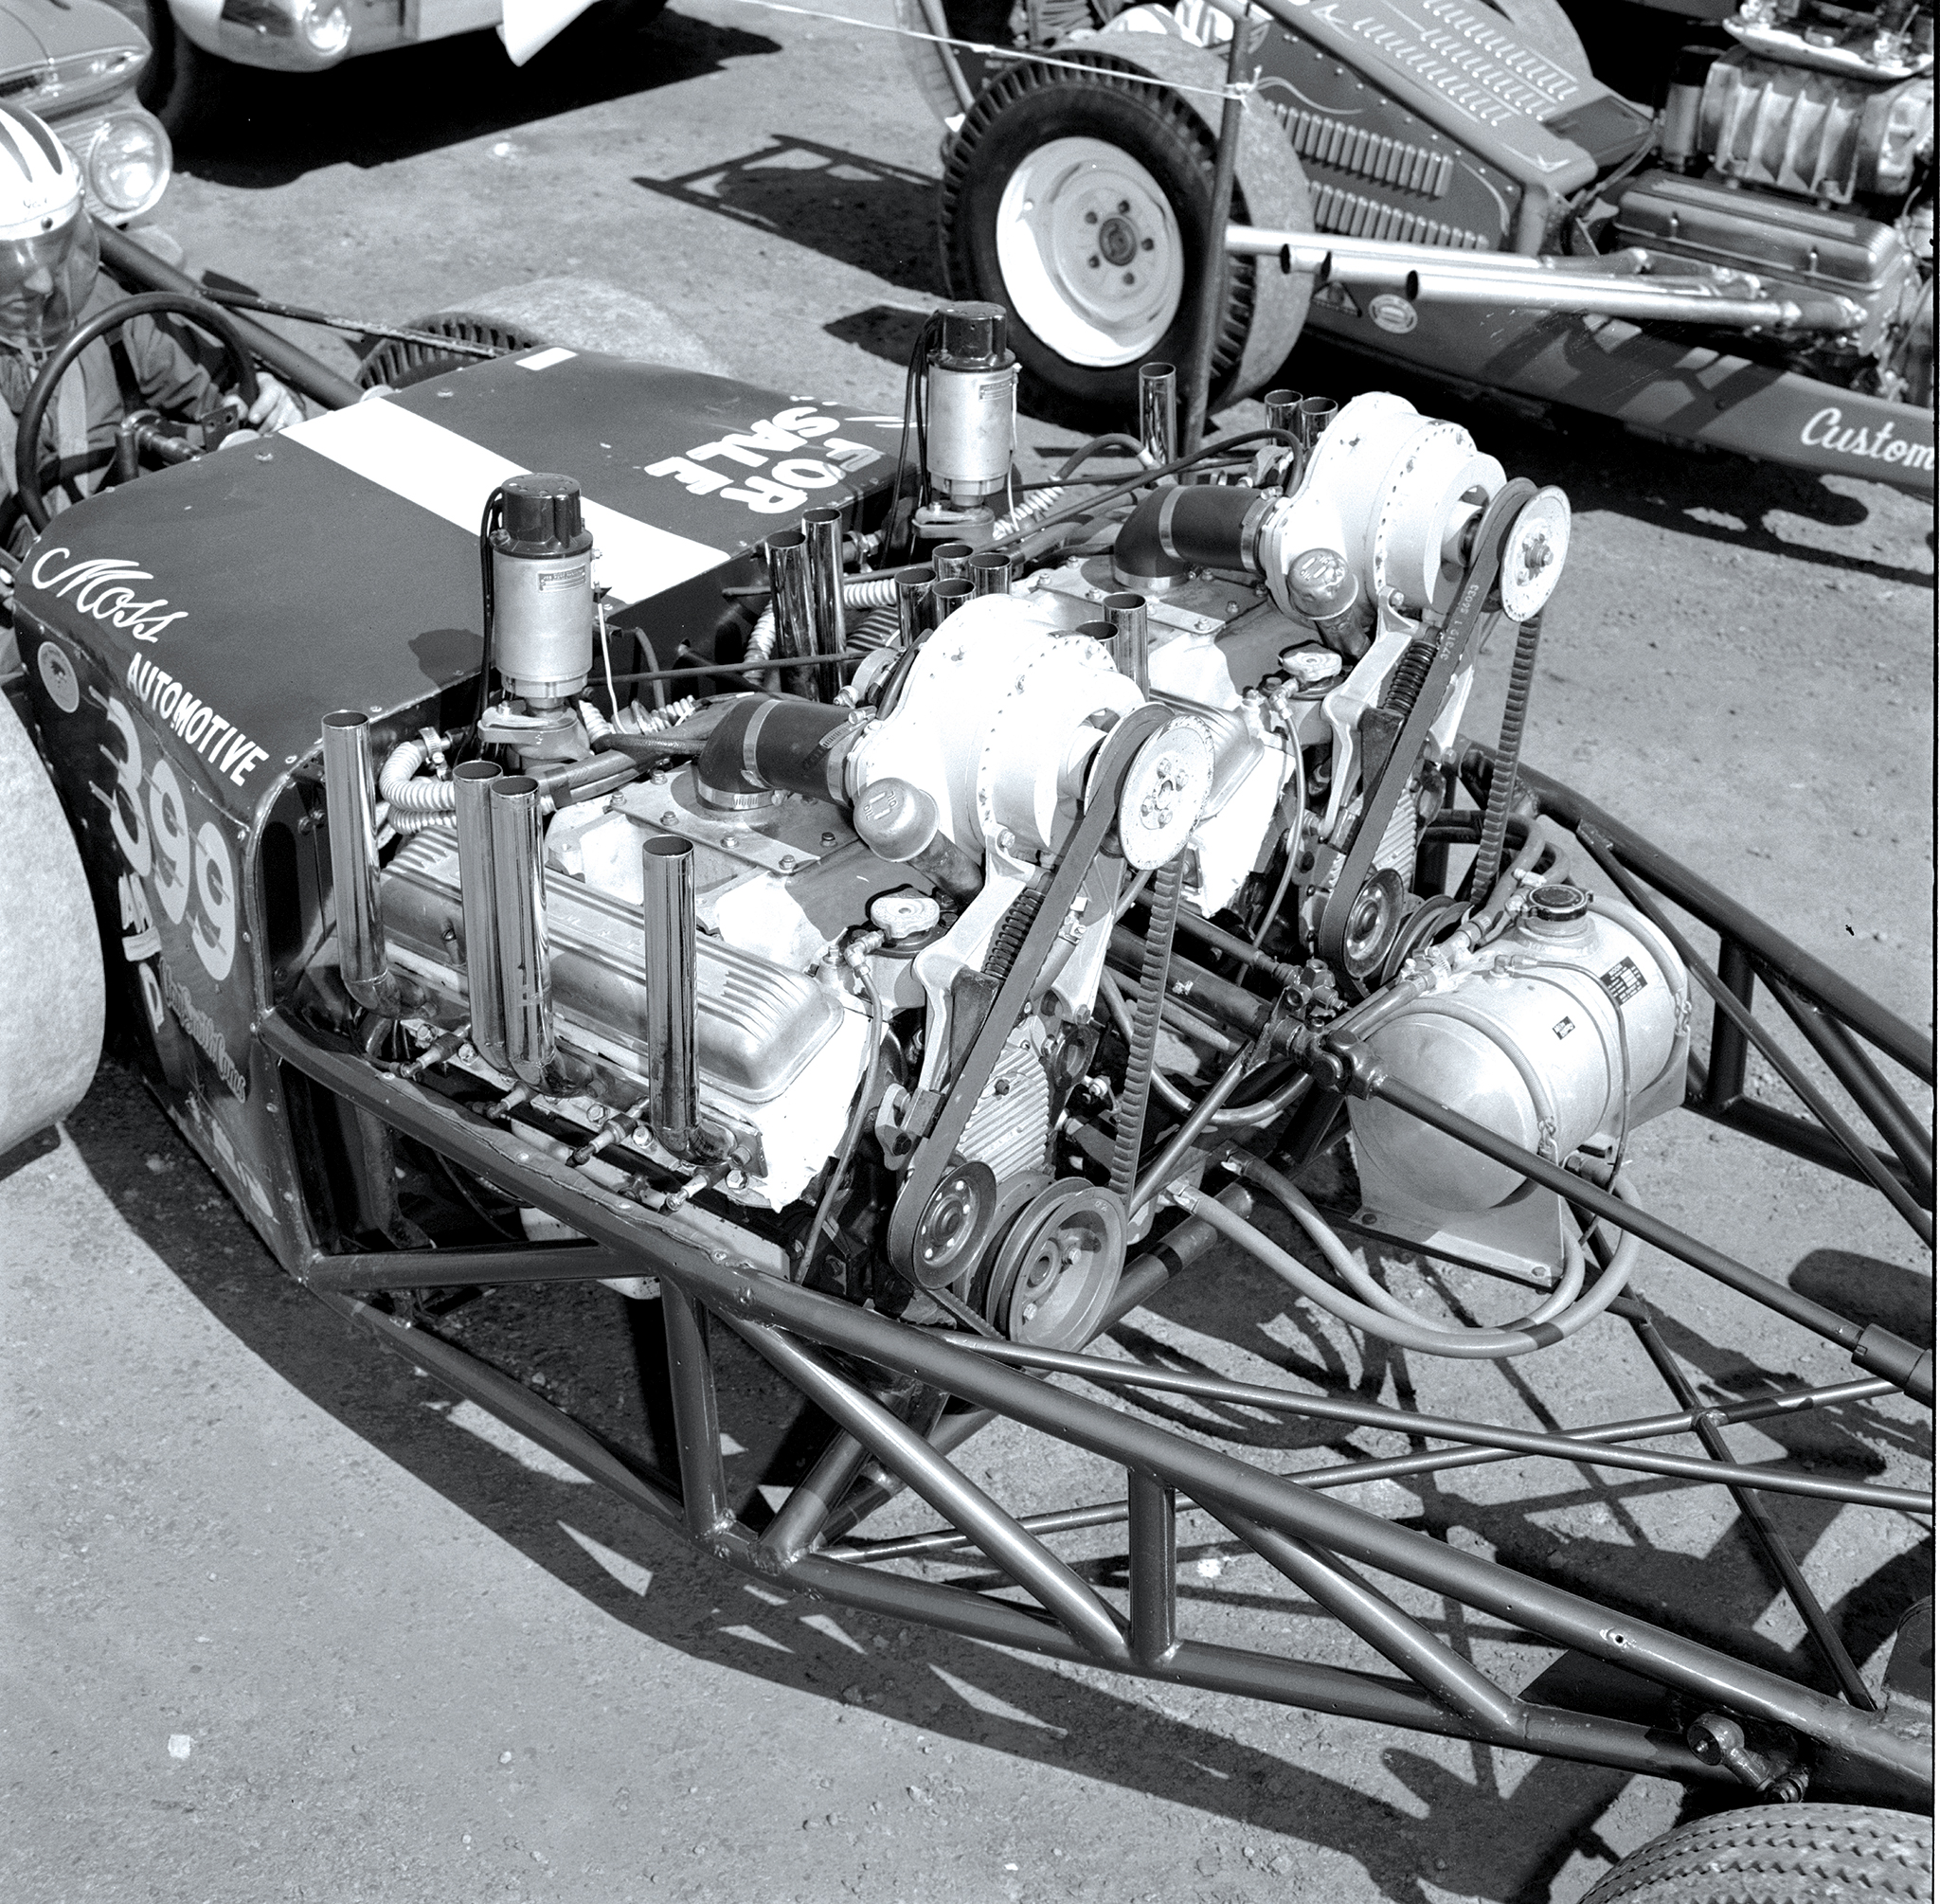 Texan Jack Moss was an opposed-twin-engine terror in the early years and raced at the first NHRA Nationals at Great Bend, Kansas, and got down to four cars. In the early 1960s, he built the twin-engine car shown here. Originally, it had a full streamliner body slightly resembling the Jocko-designed streamliner that Garlits built and raced. He would later change to 6-71 Roots-type blowers, and around 1962, he would build a single-engine gas dragster.